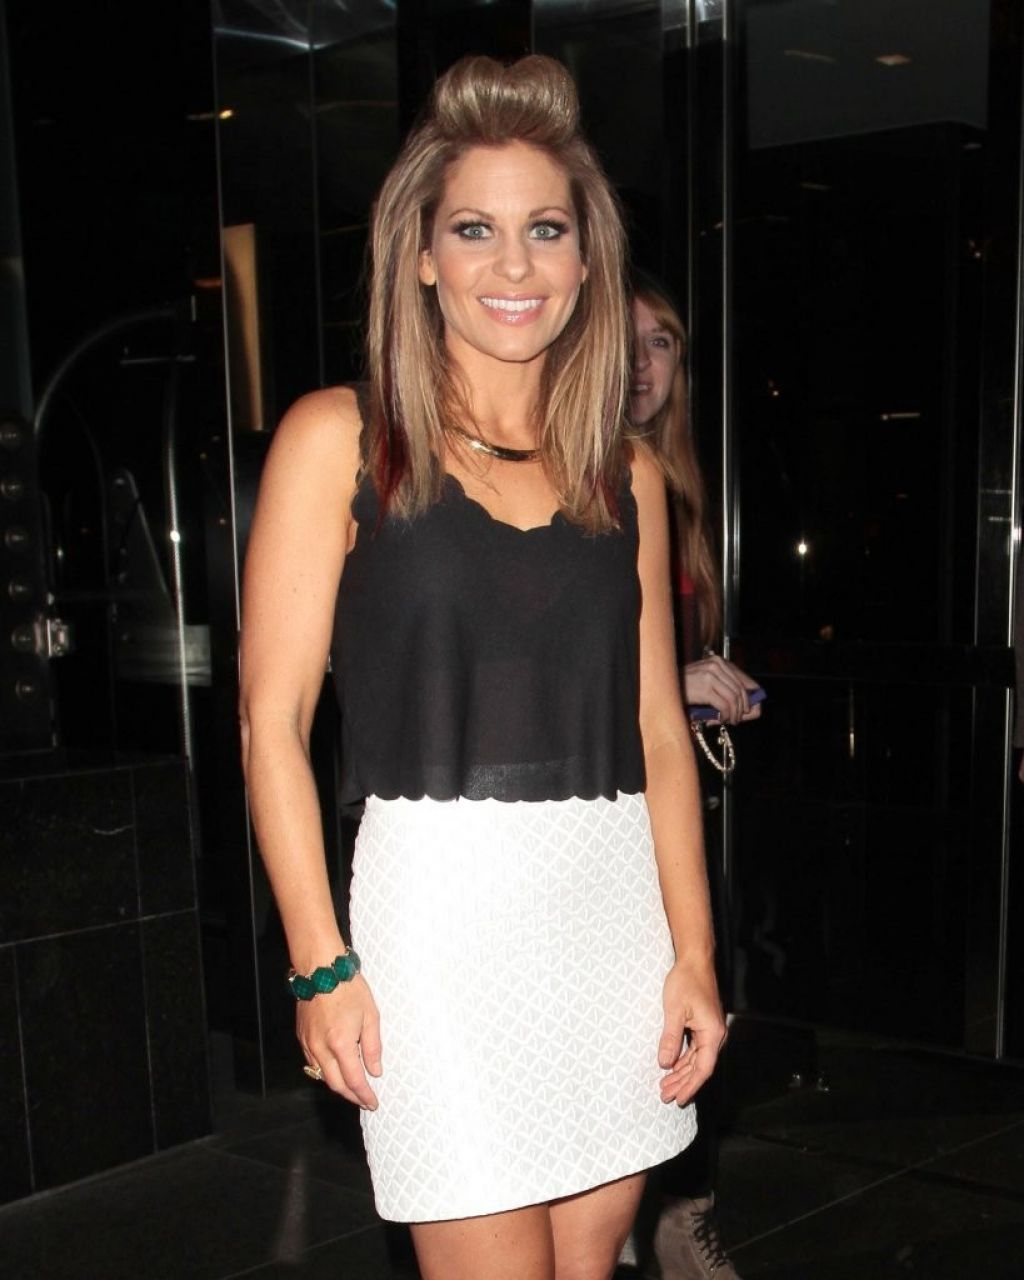 Candace Cameron Bure Night Out Style - West Hollywood - April 2014